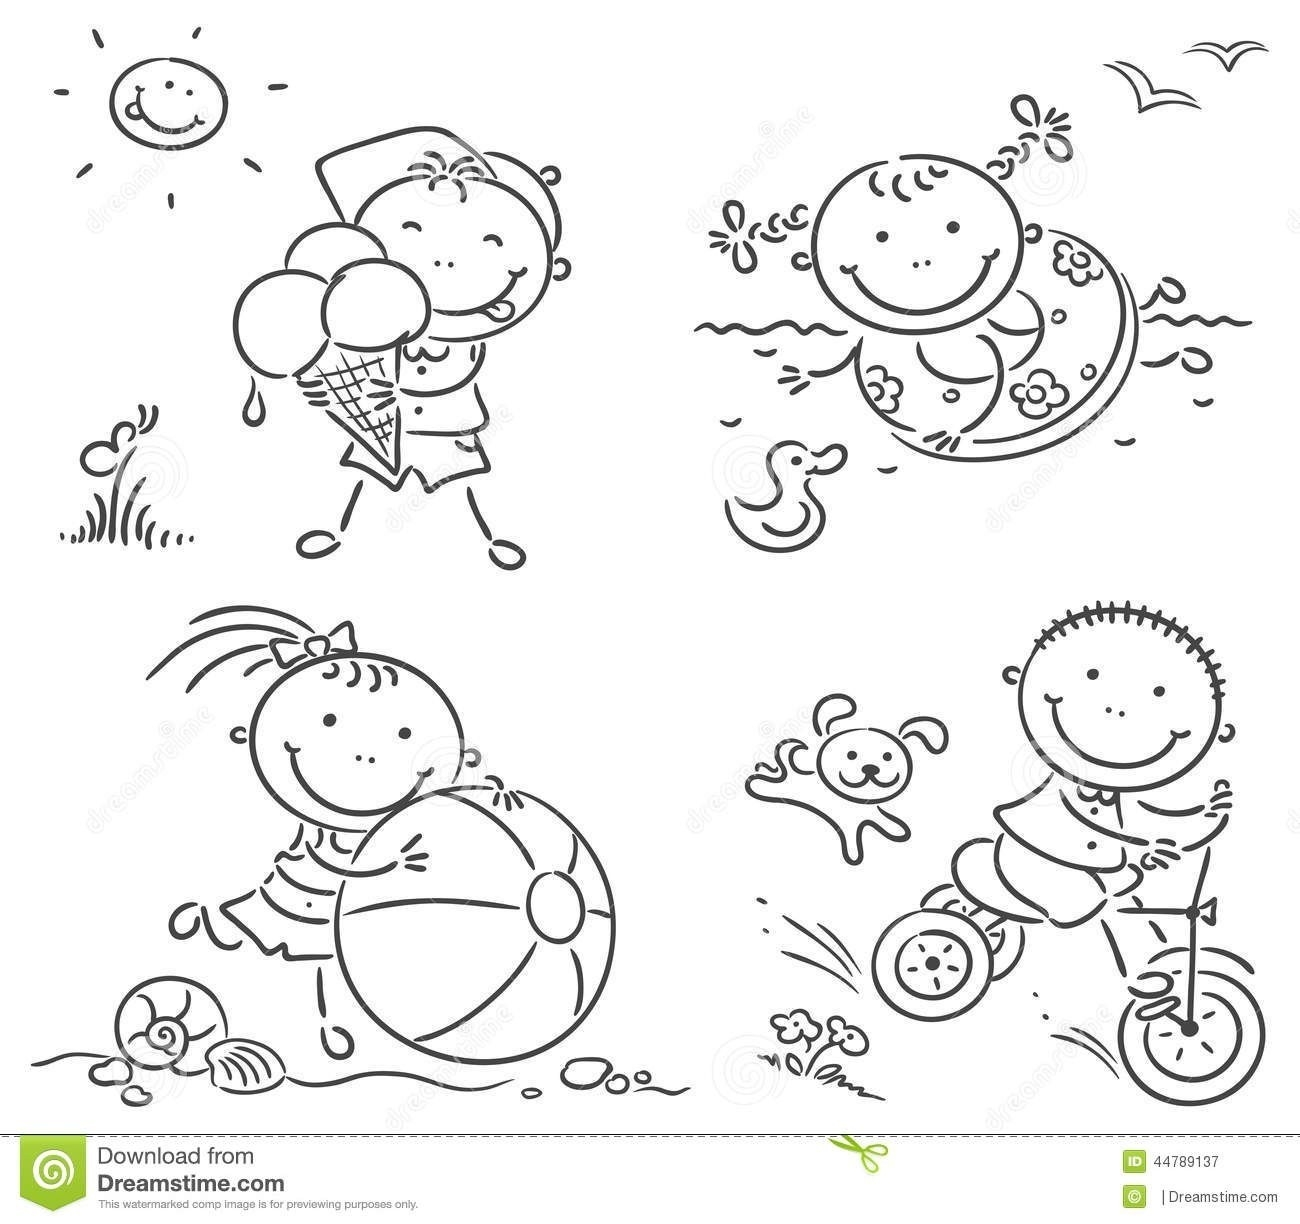 Activities clipart black and white, Activities black and.